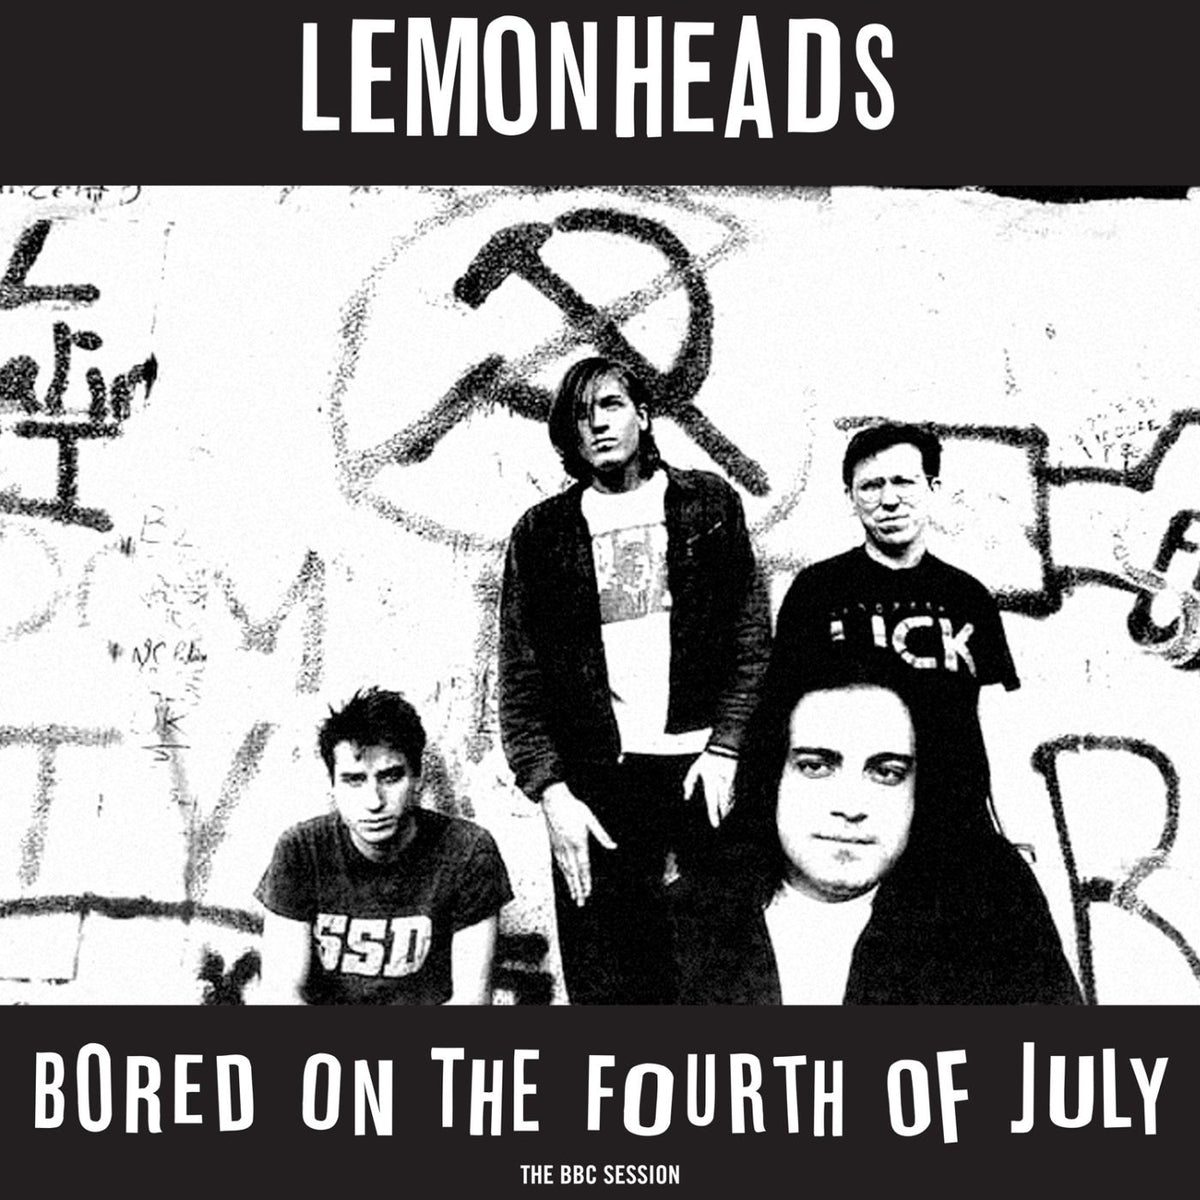 "The Lemonheads: Bored on the 4th July Vinyl 12"" (Record Store Day)"